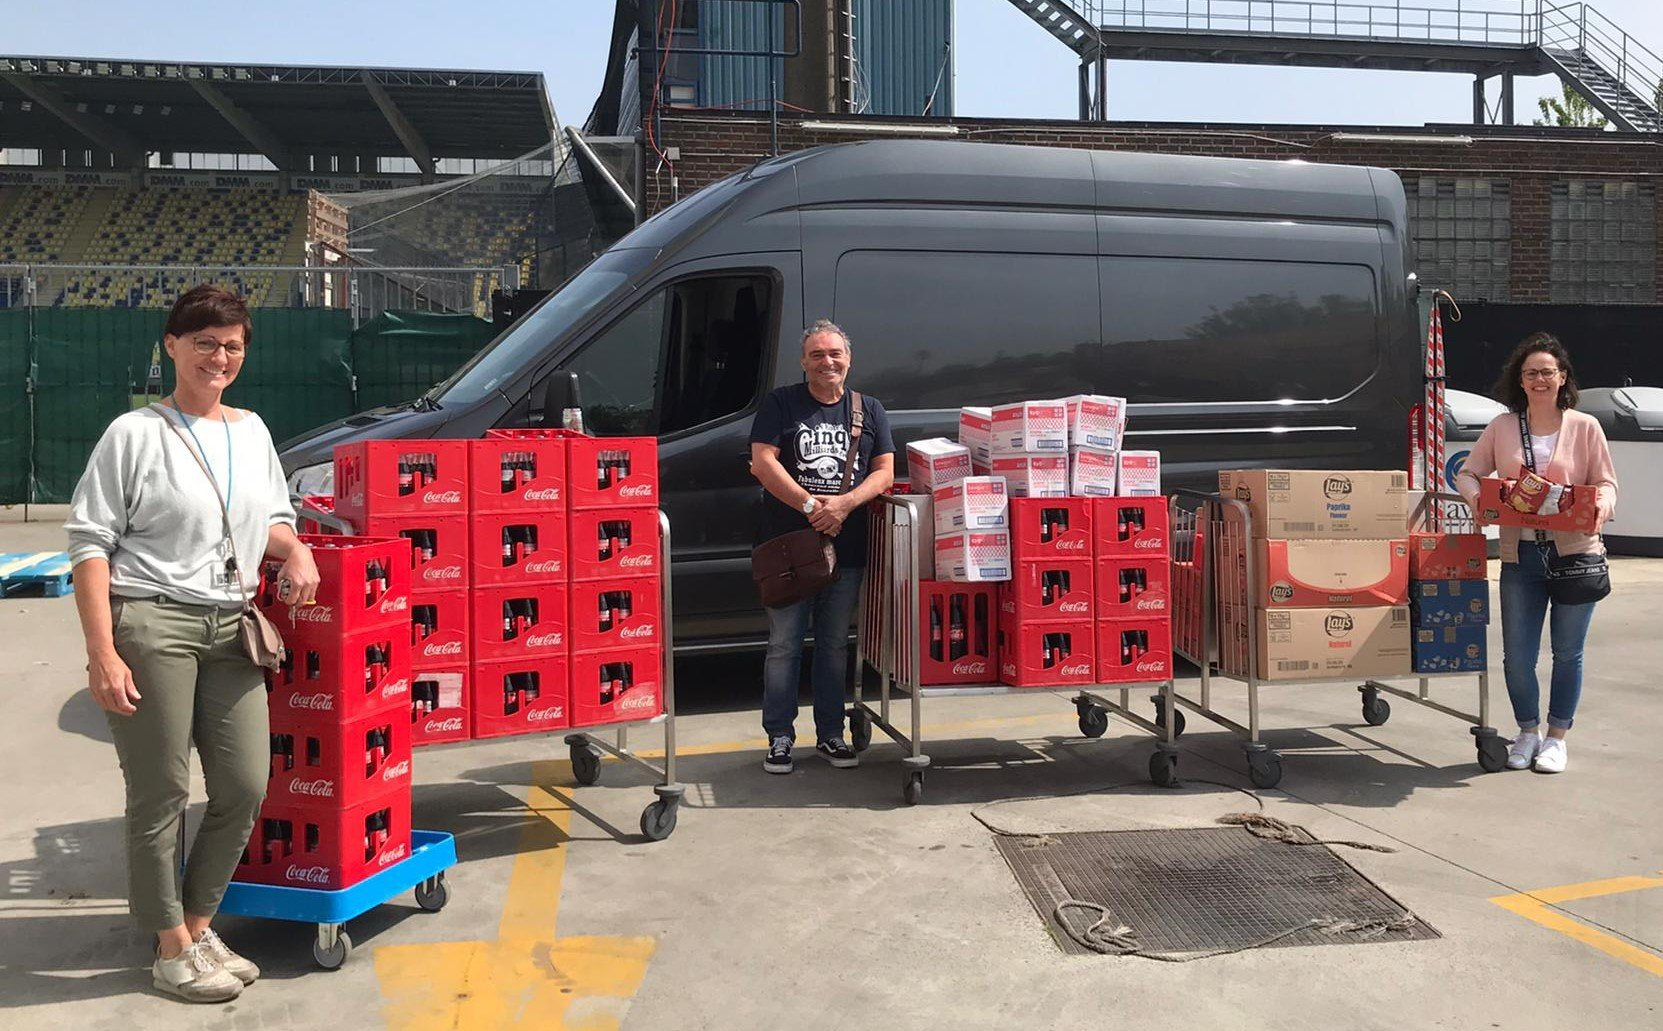 STVV Donates Drinks to Asster